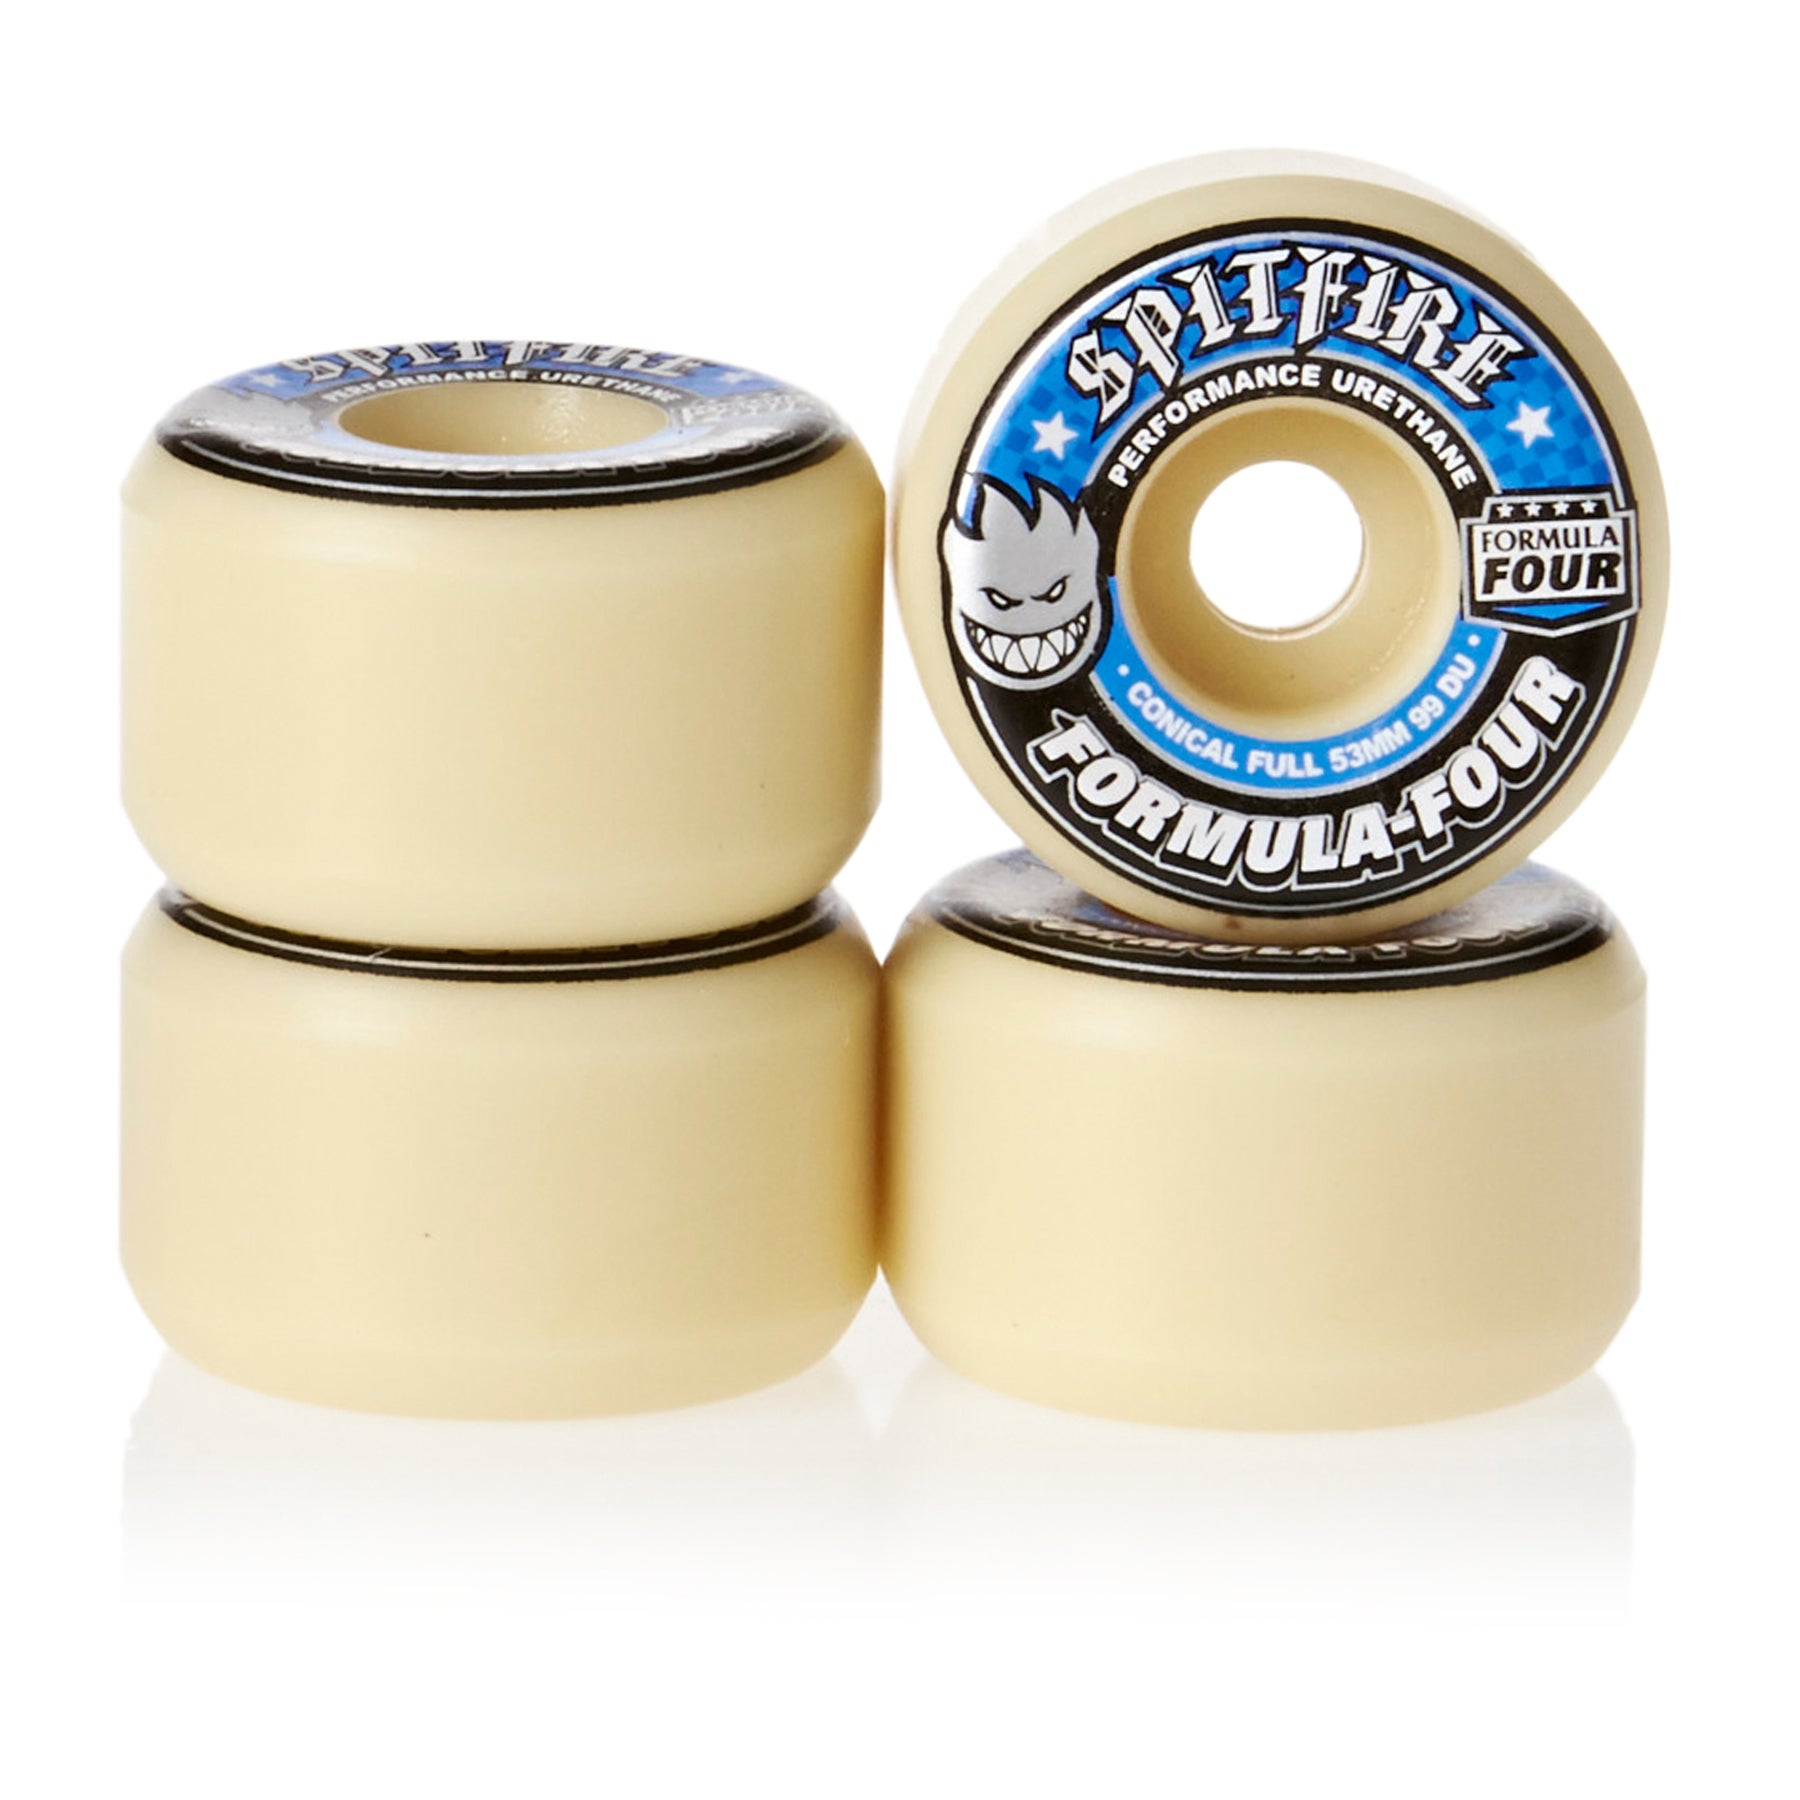 Ruedas de patinete Spitfire Formula Four Wheels Conical 99DU Natural 53mm - White